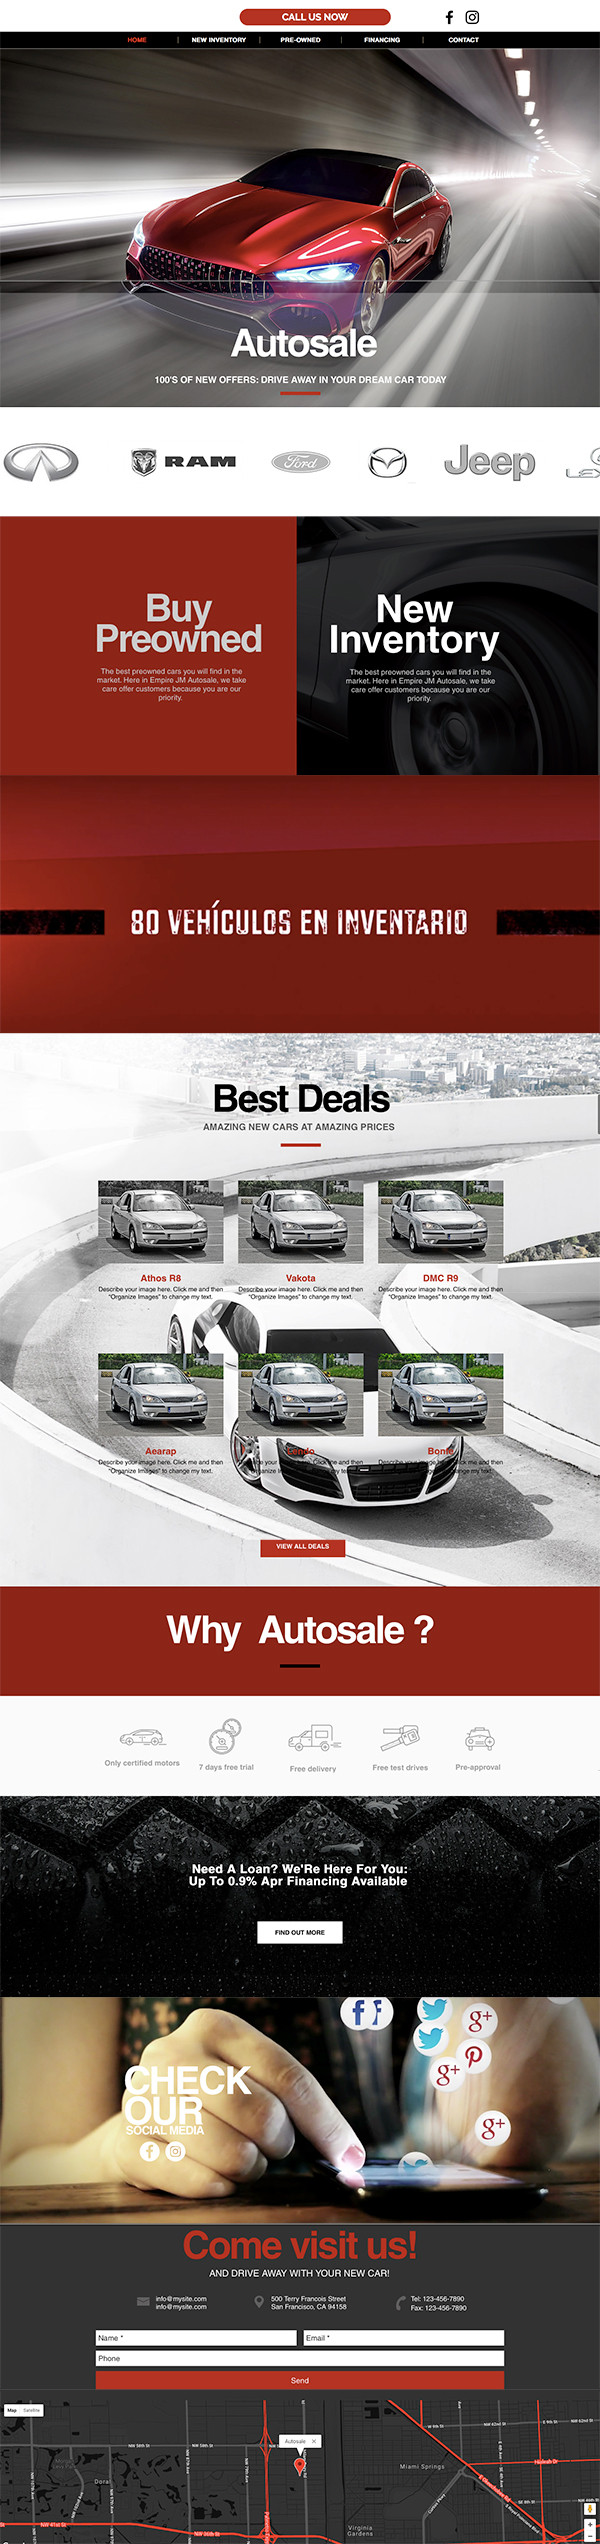 dealer-web-design-pembroke-pines.jpg